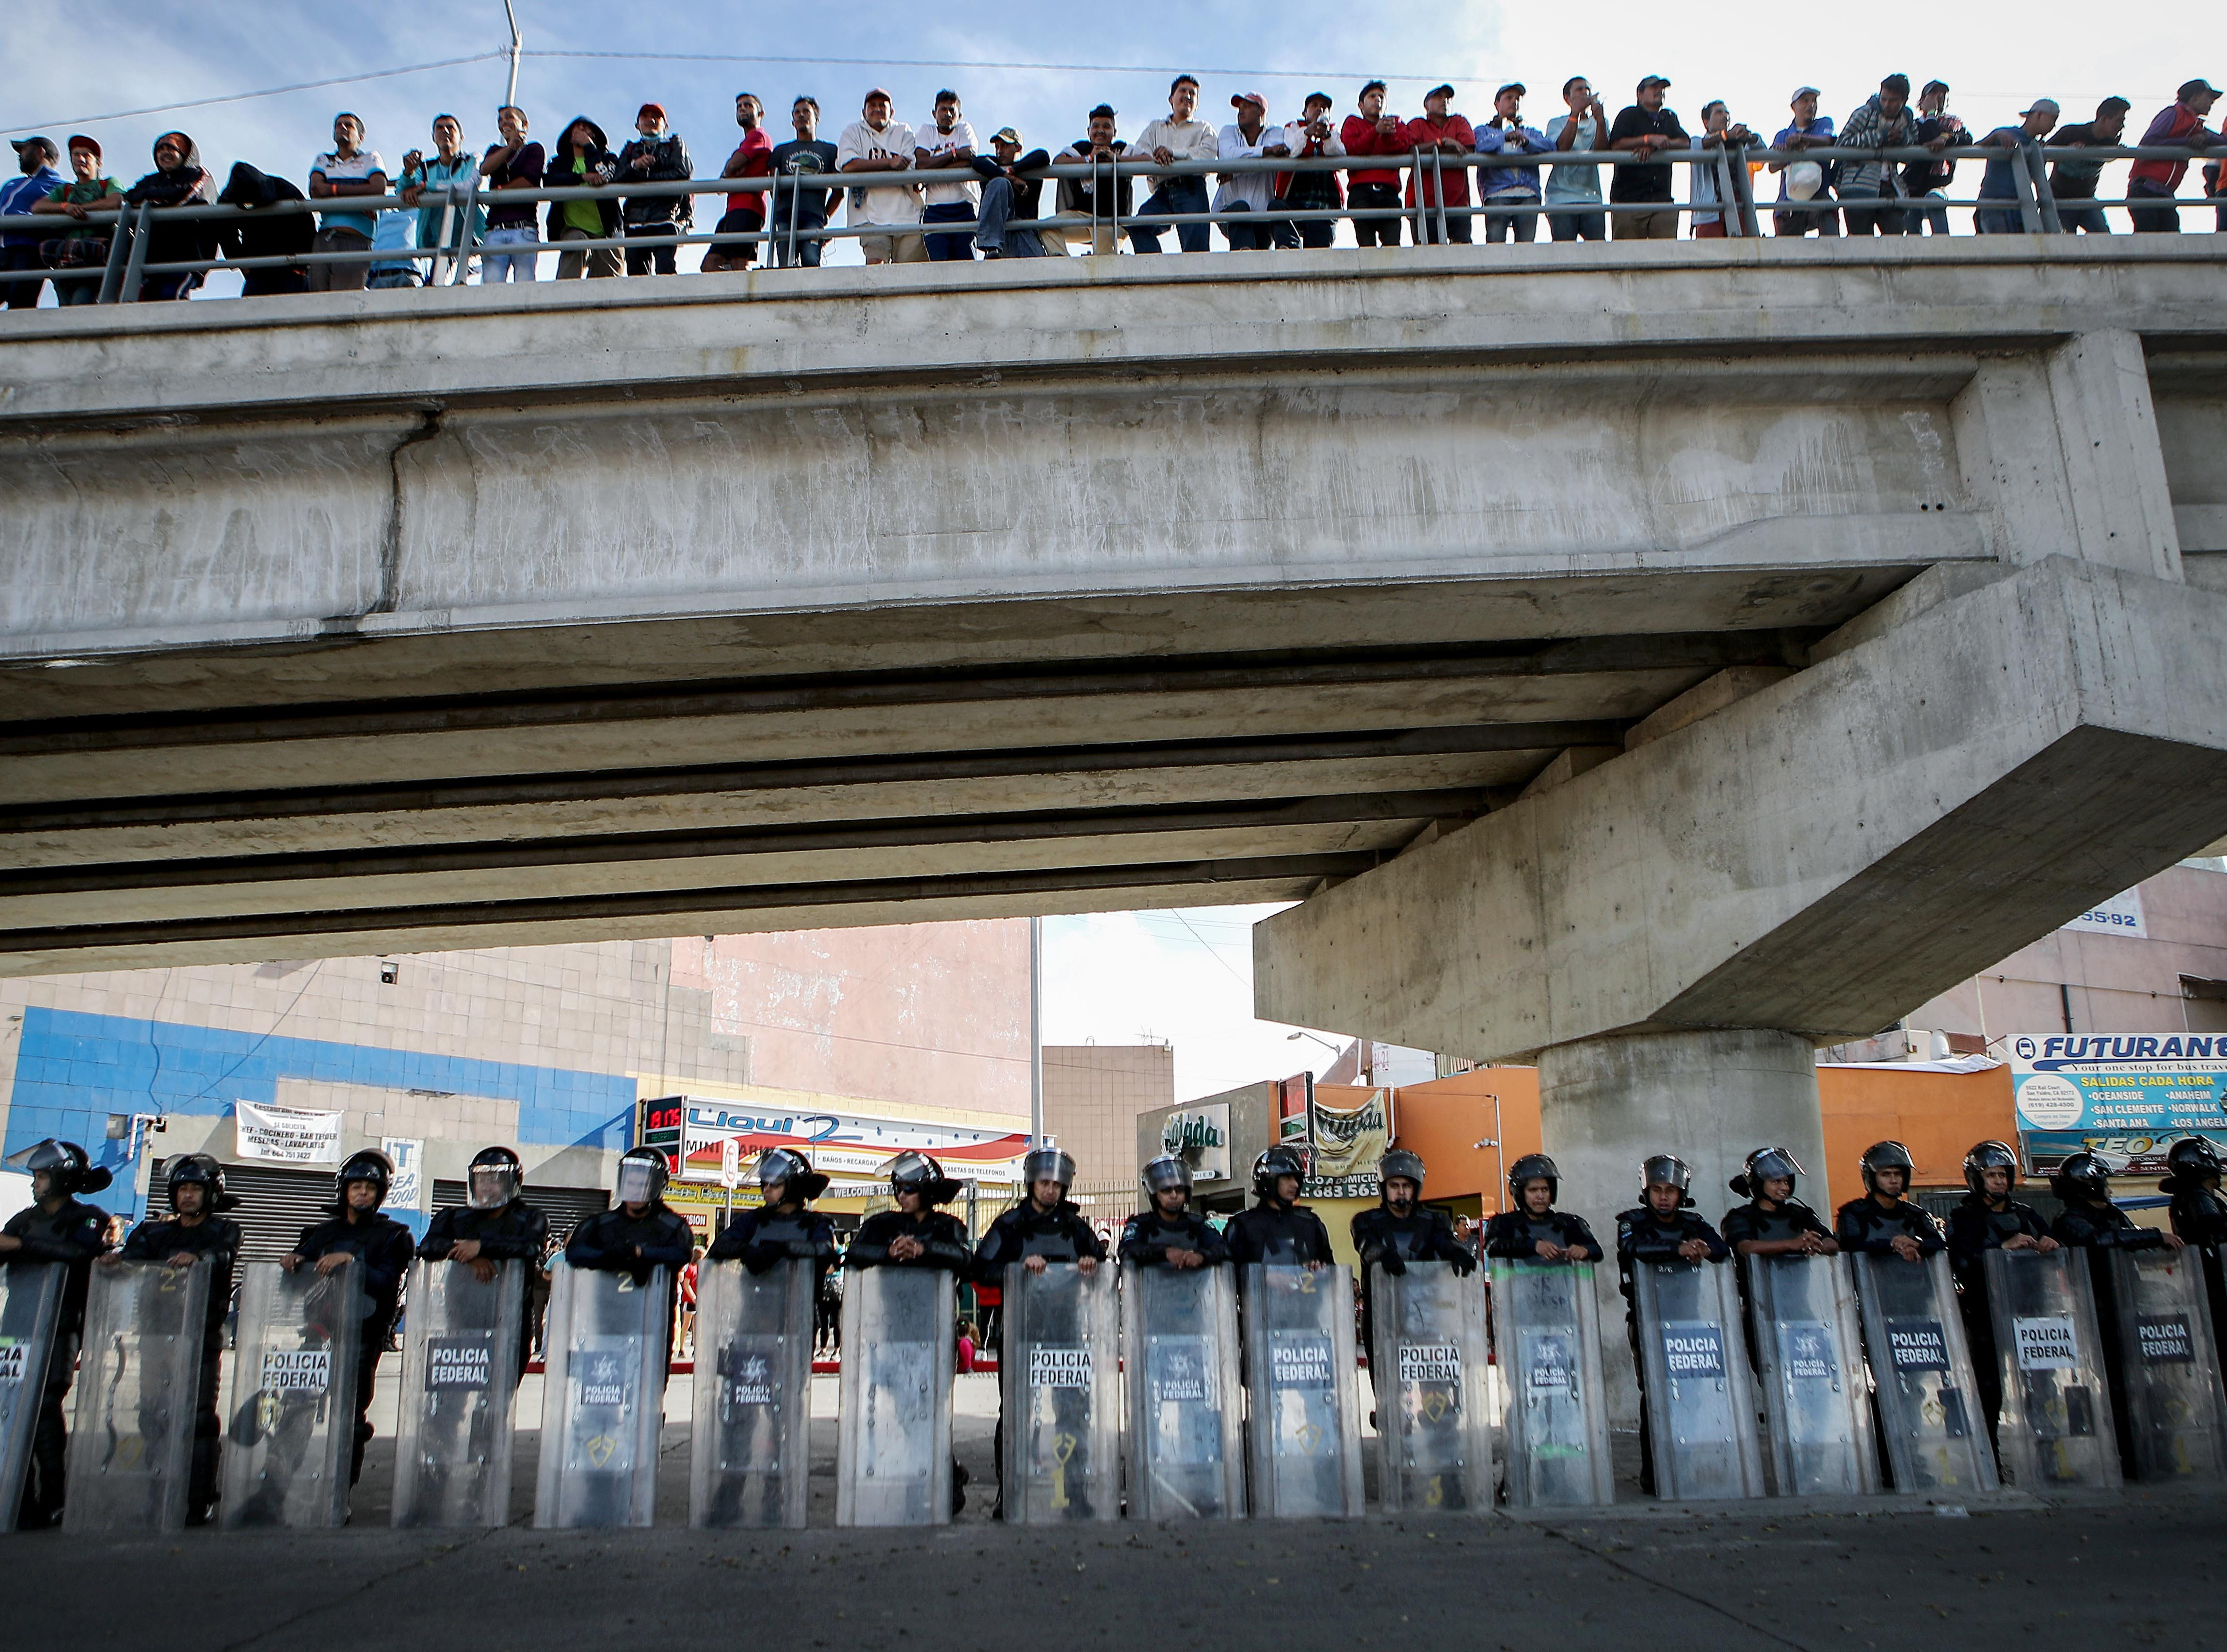 Mexican riot police keep watch beneath onlookers on a bridge as members of the 'migrant caravan' rally outside the El Chaparral port of entry on Nov. 22, 2018 in Tijuana, Mexico. Parts of the migrant caravan have been arriving to Tijuana after traveling for more than a month through Central America and Mexico to reach the U.S. border. President Donald Trump today threatened to close the U.S.-Mexico border if the arrival of migrants leads to a loss of 'control' on the Mexican side.